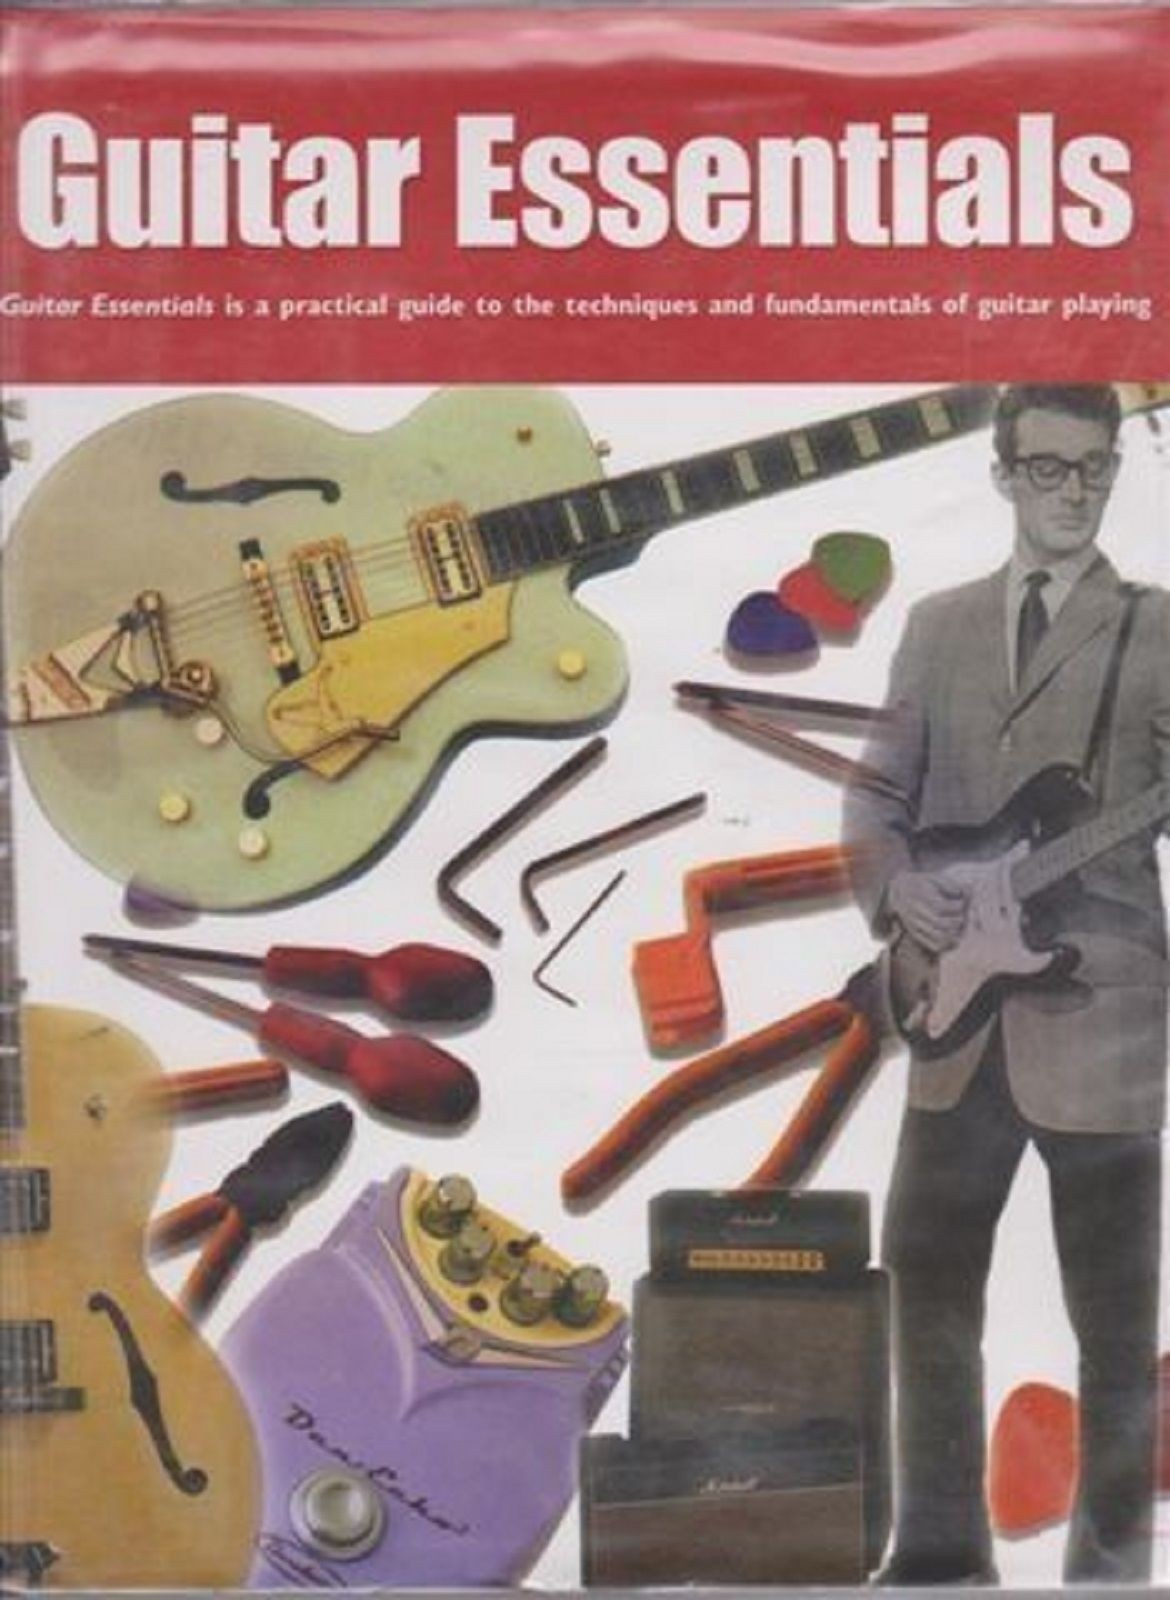 Guitar Essentials Techniques & Fundamentals of Playing Book Tutor Method S108